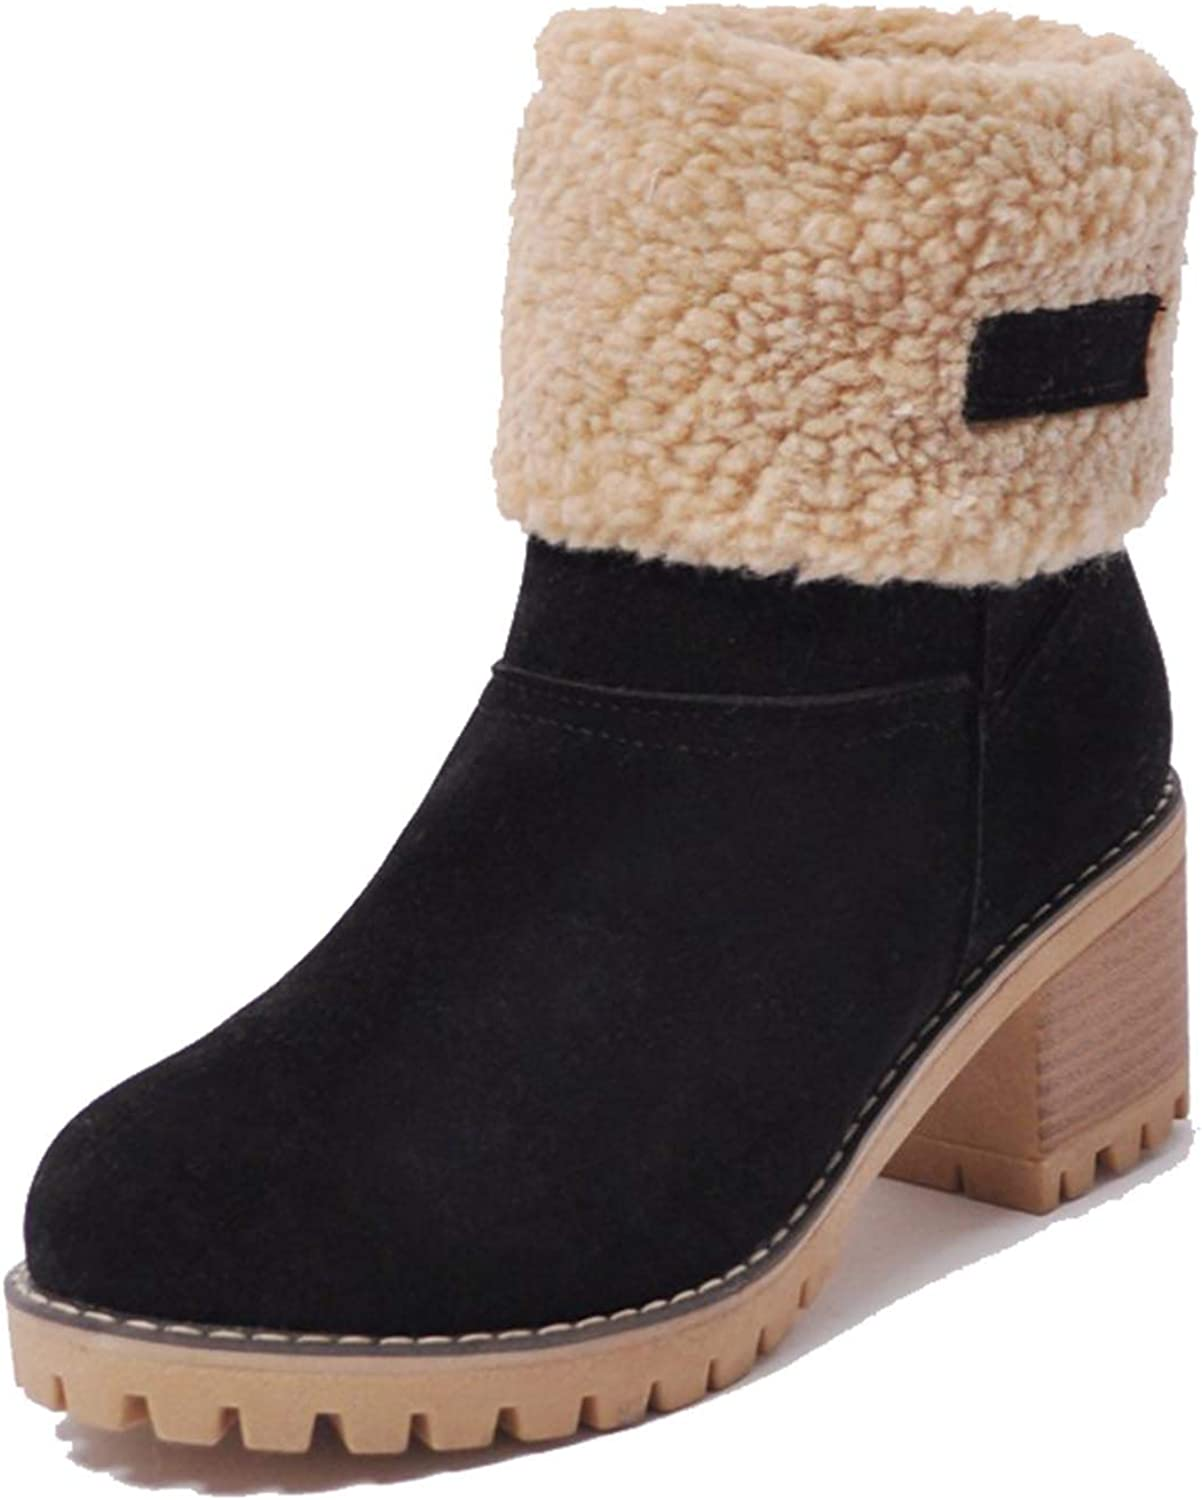 Kssmi Warm Cute Women Winter Snow Ankle Boots Faux Fur Chunky Block Heel  Short Booties